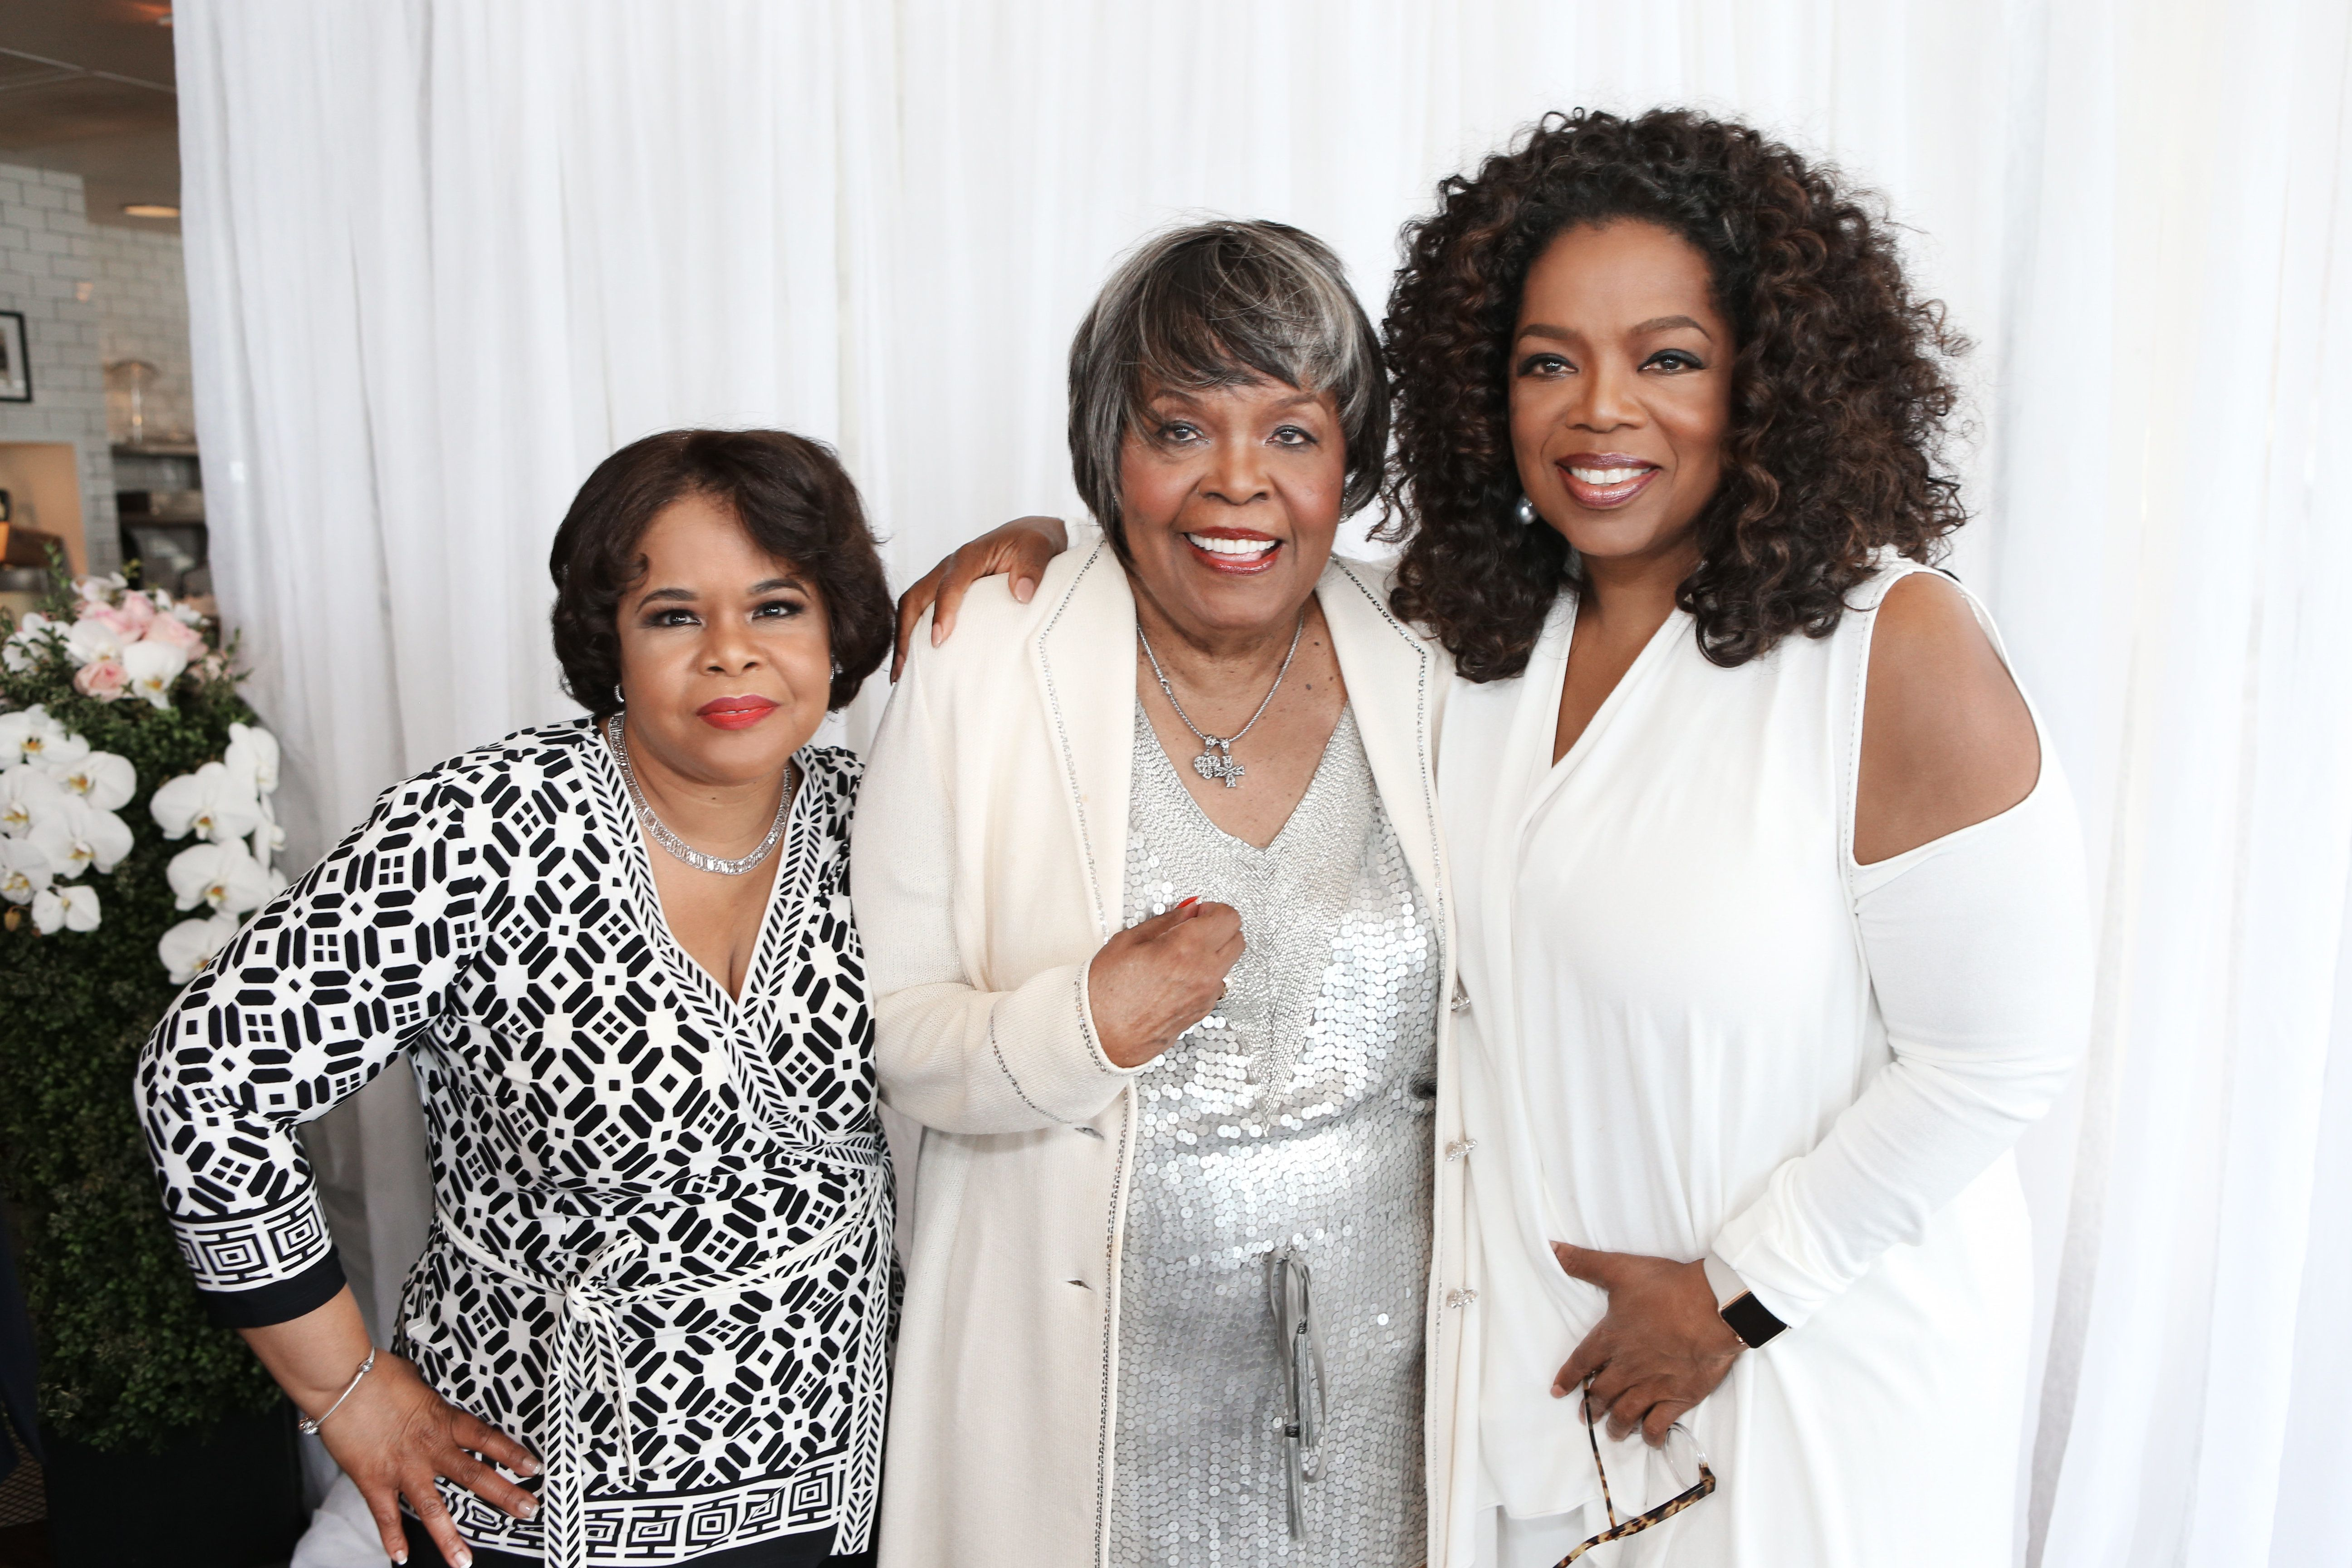 Vernita Lee (center) with her daughters Patricia Amanda Faye Lee (L) and Oprah Winfrey (R) at Vernita's 80th birthday p